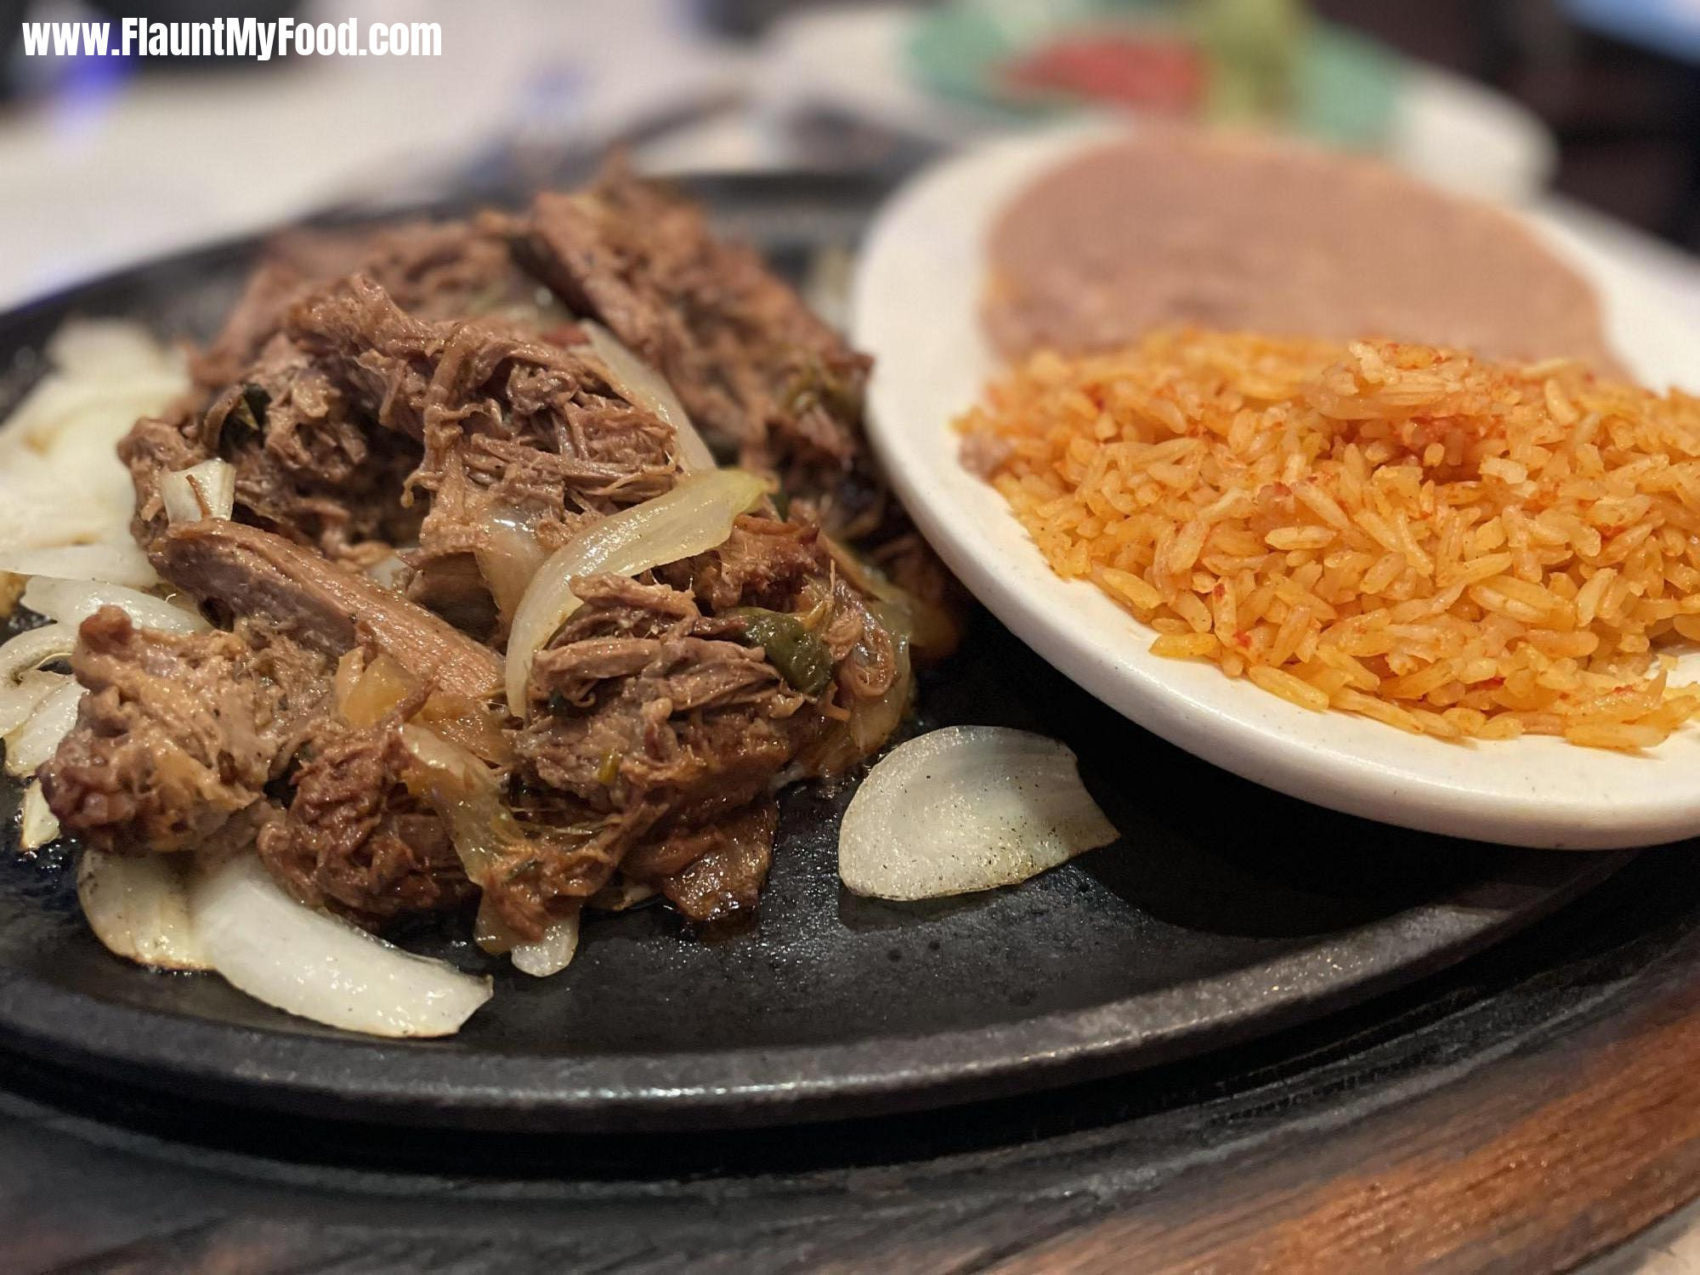 Brisket Fajitas at Rio mambo Southwest Fort Worth TexasBrisket Fajitas at Rio mambo Southwest Fort Worth Texas. Rio mambo is located in a plaza right off of Bryant Irvin Road in Southwest Fort Worth Texas.